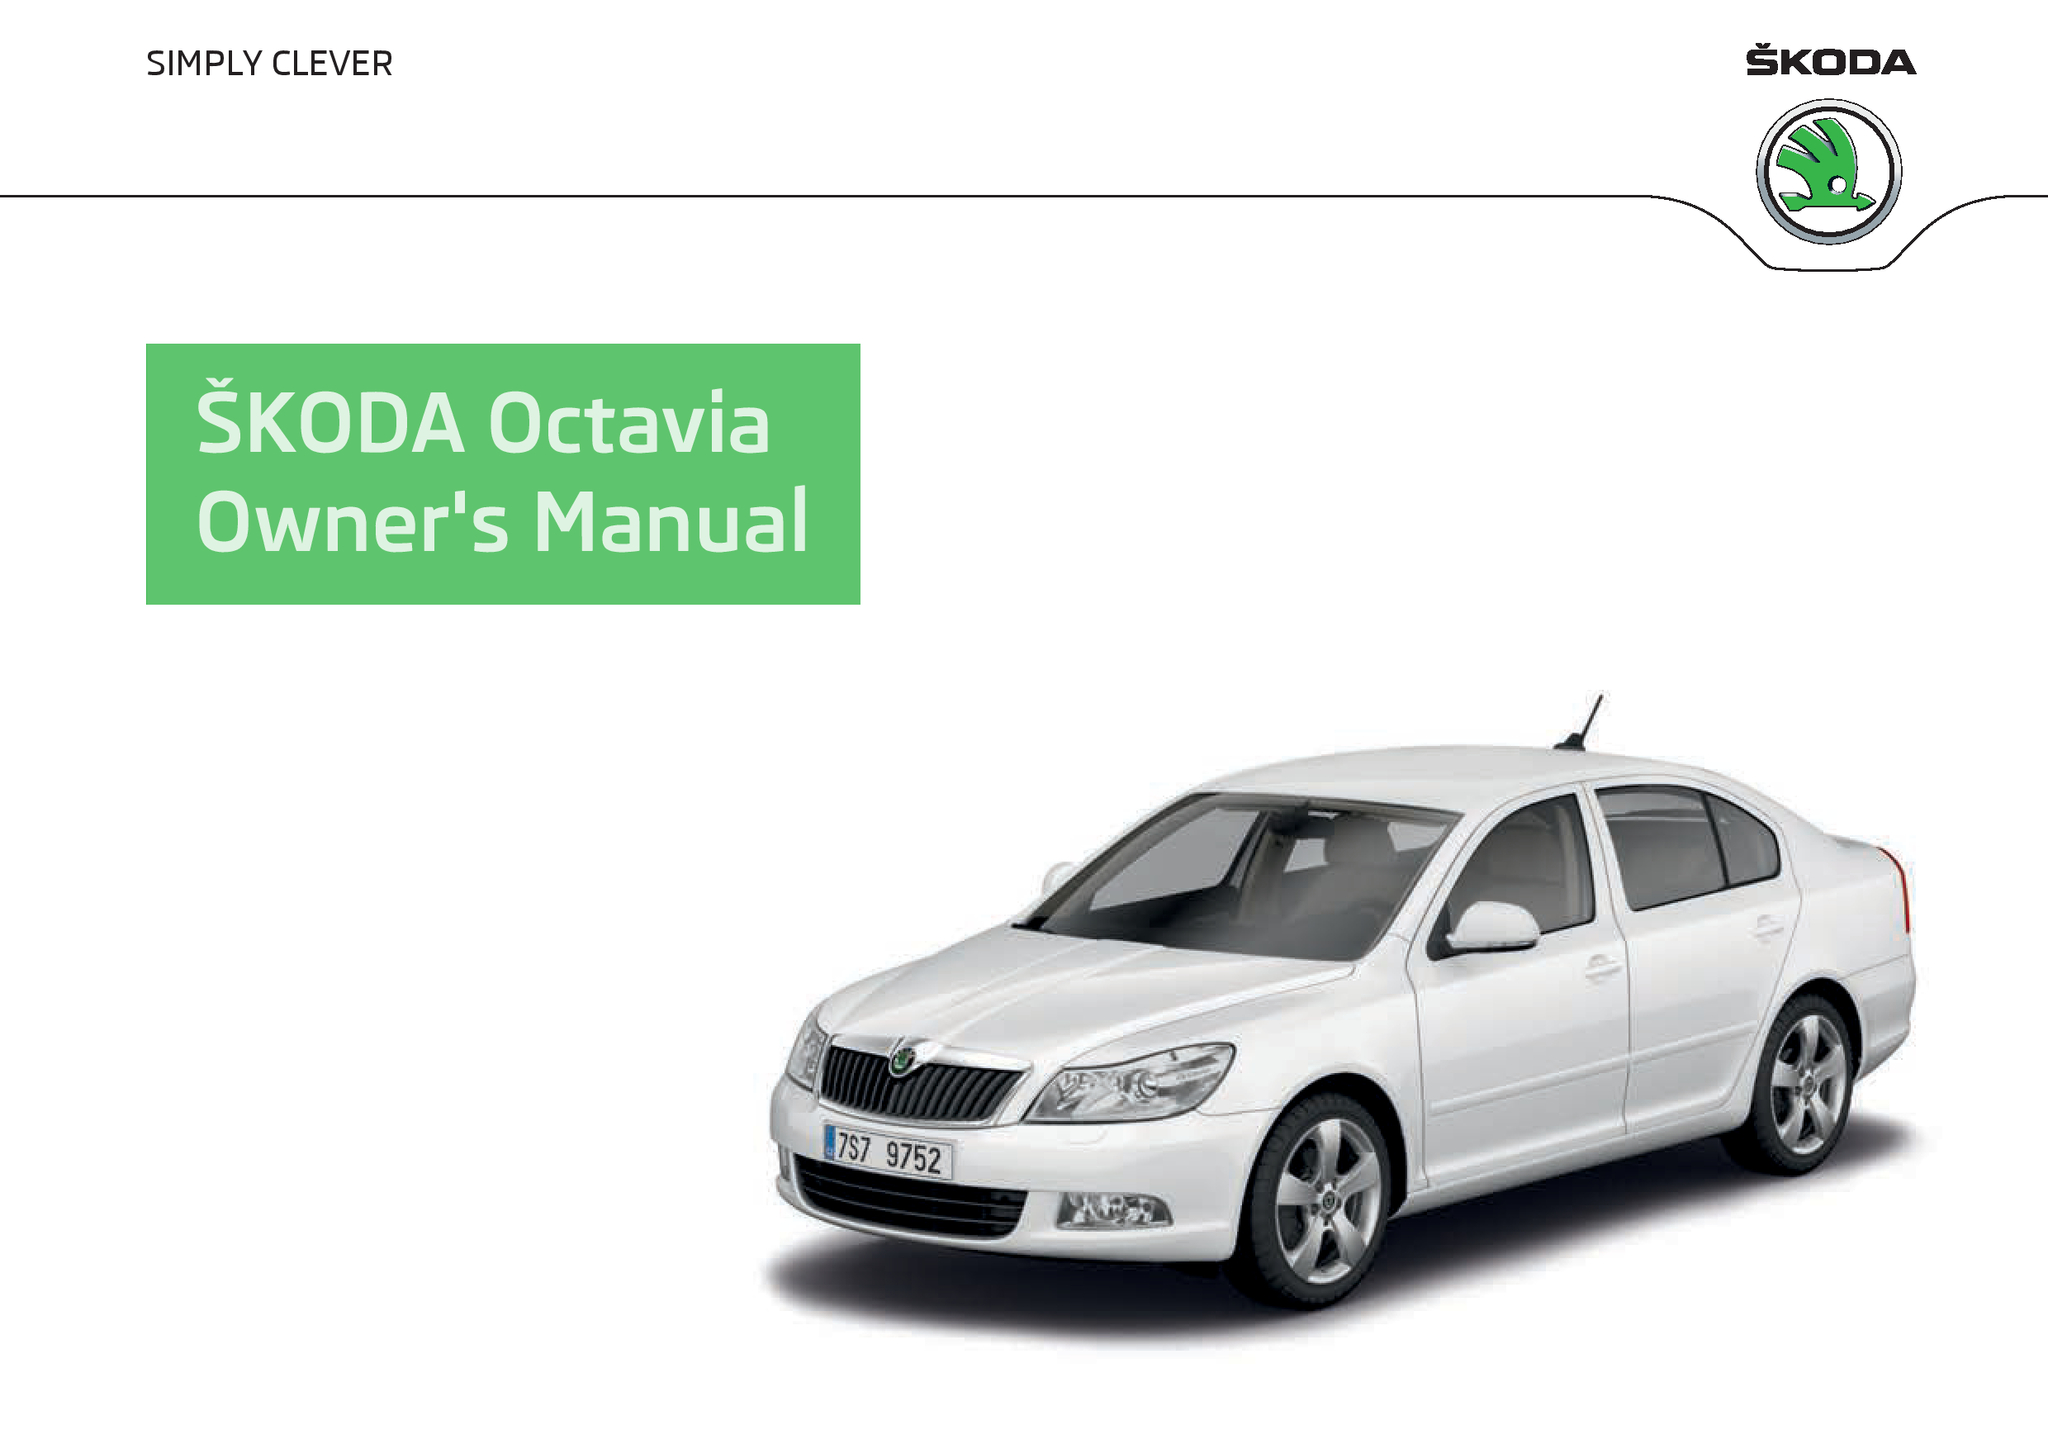 Å koda octavia since 11 2008 owner s manuals Å koda